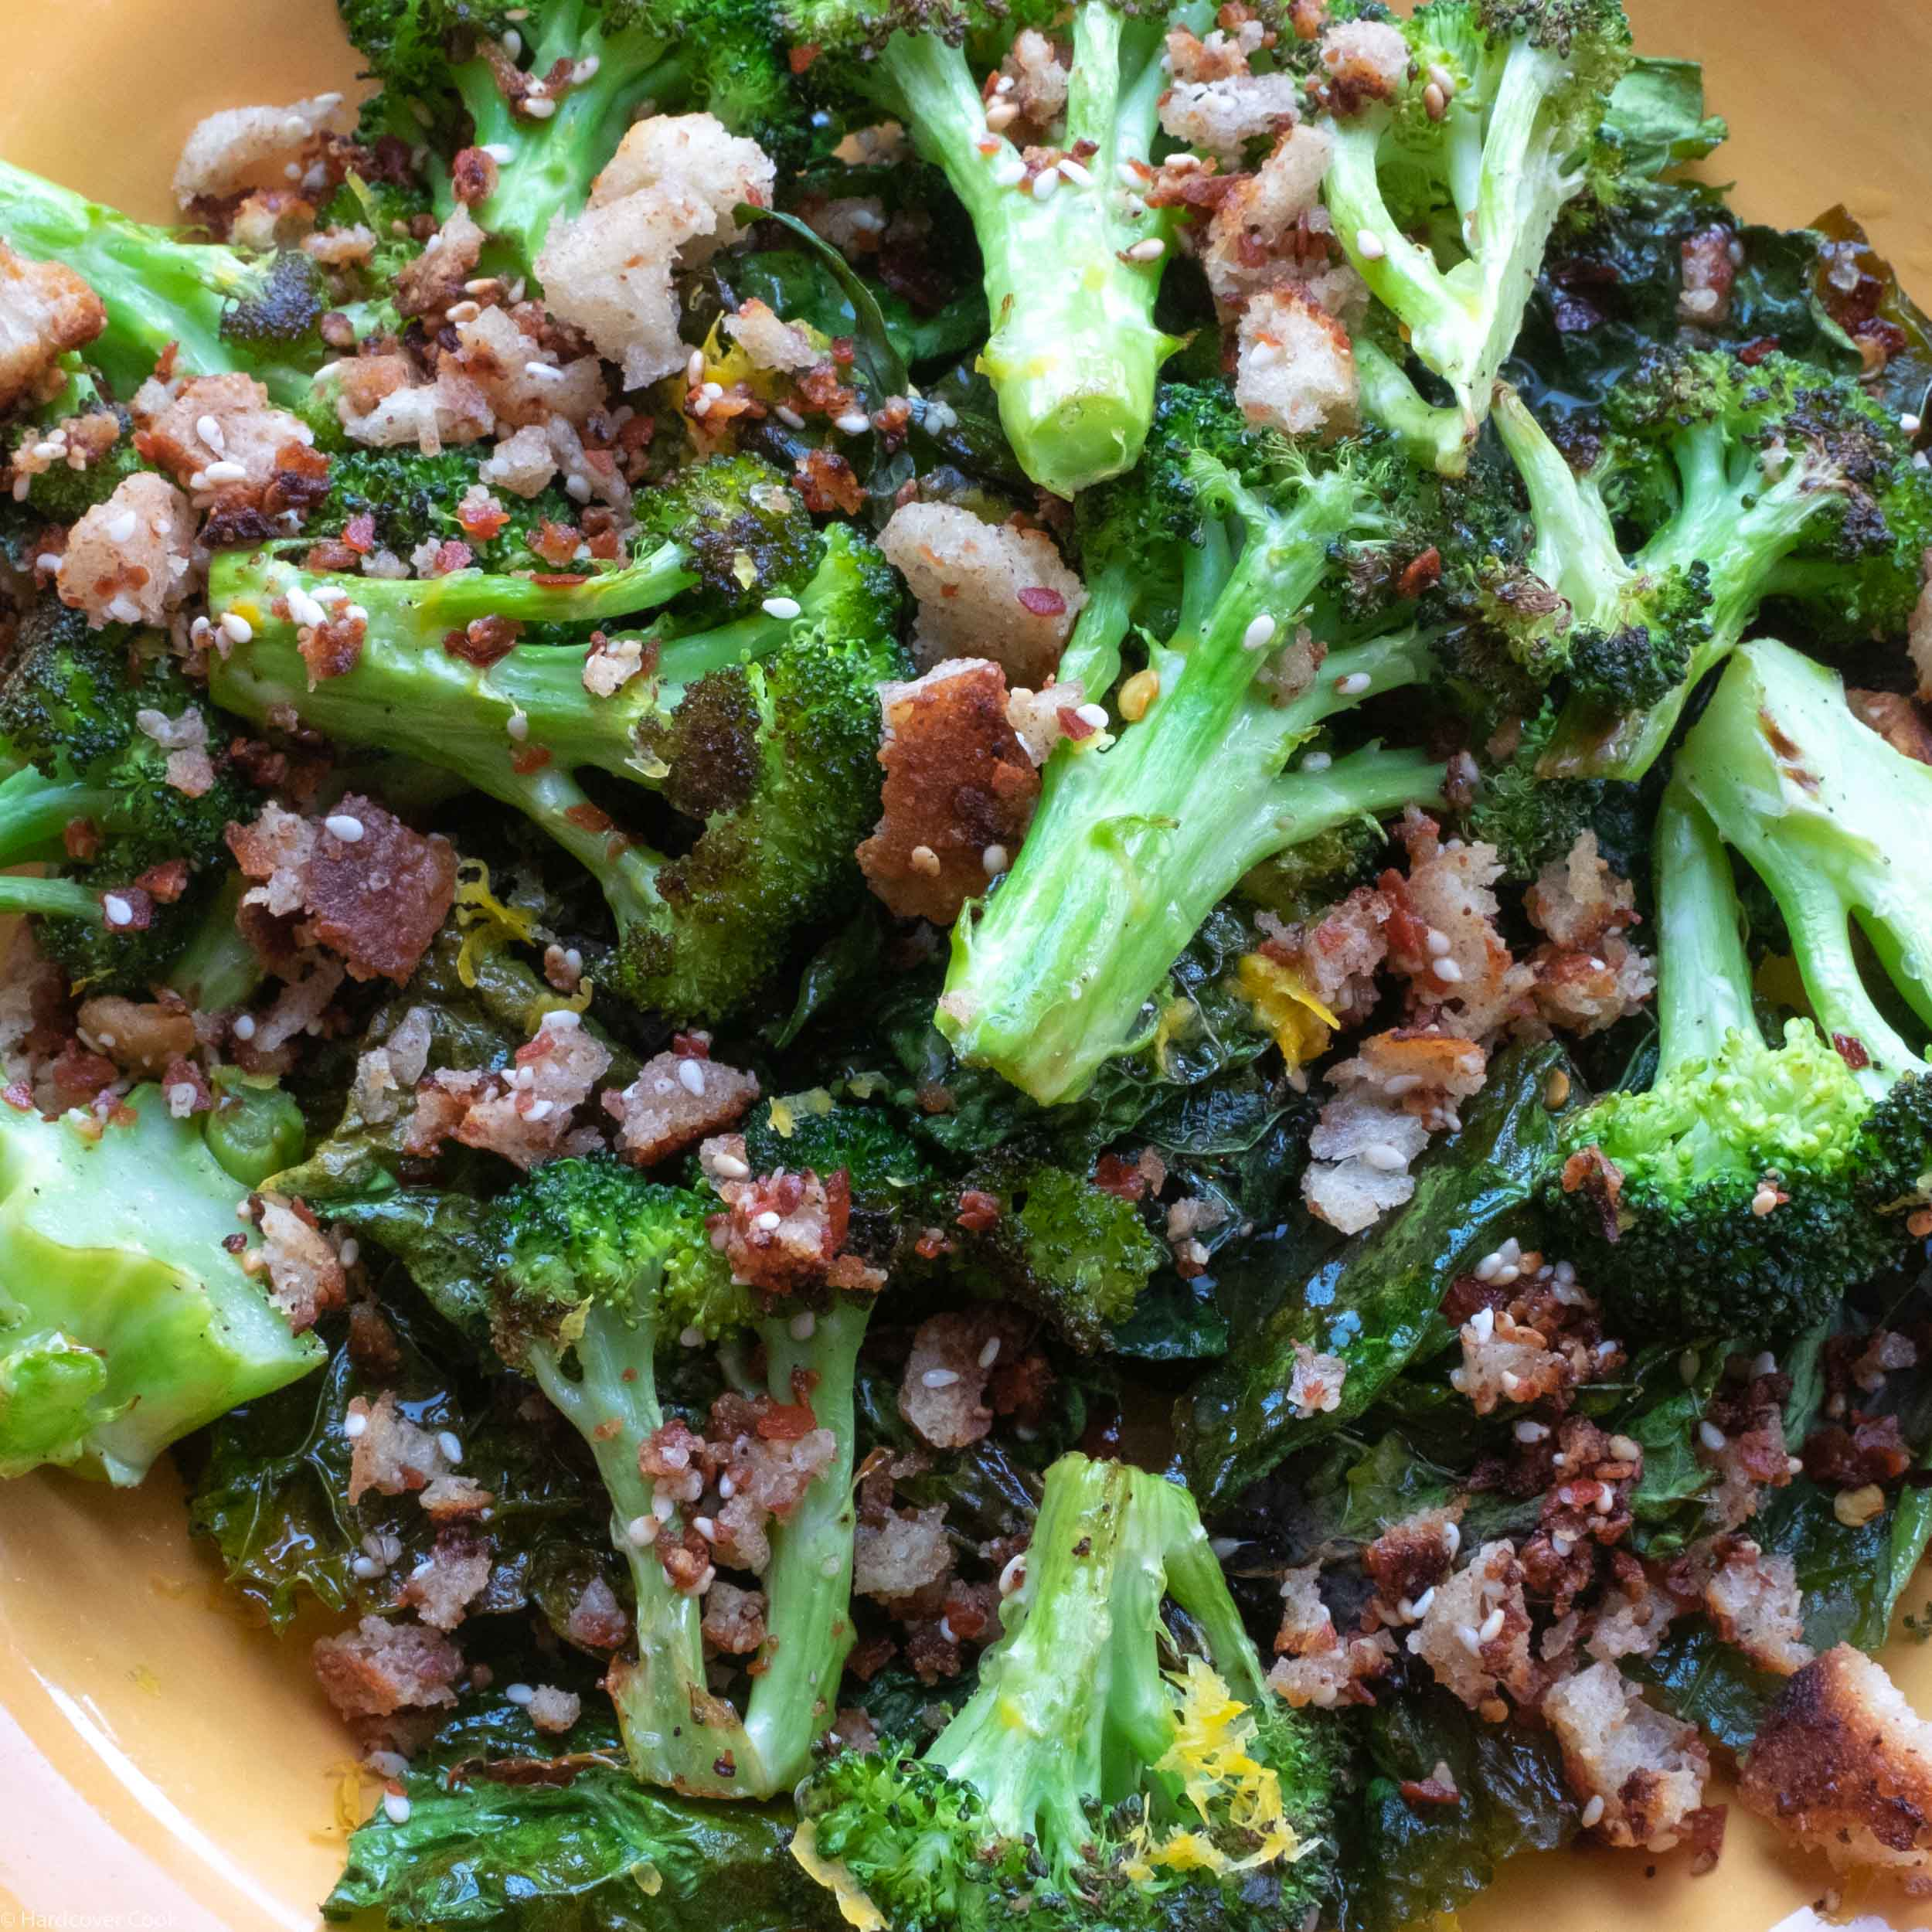 Crunchy Roasted Broccoli with Toasted Breadcrumbs from Half Baked Harvest